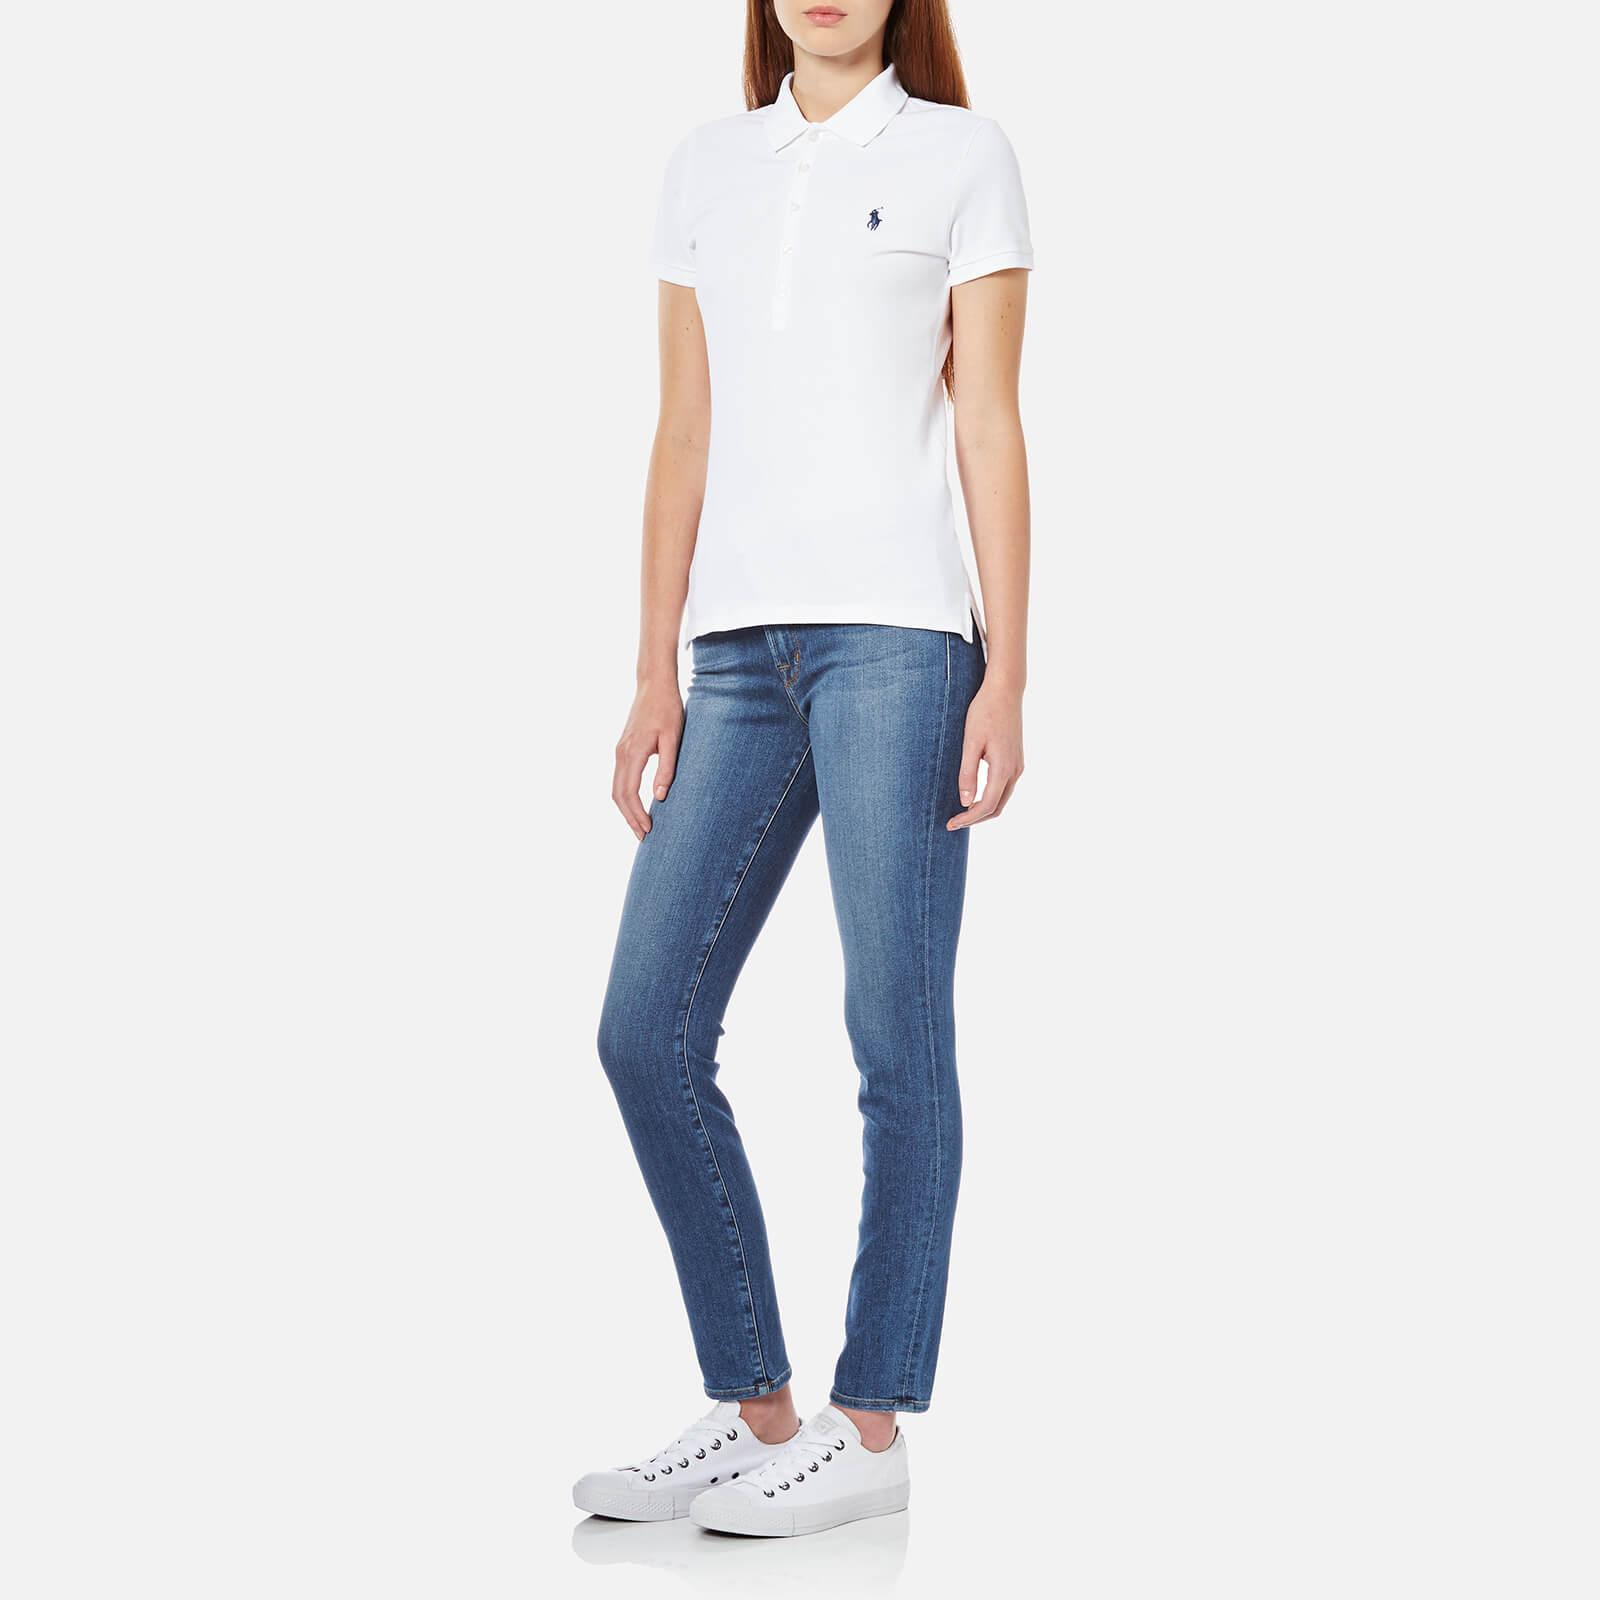 78adc13fc24f Polo Ralph Lauren Julie Polo Shirt in White - Lyst